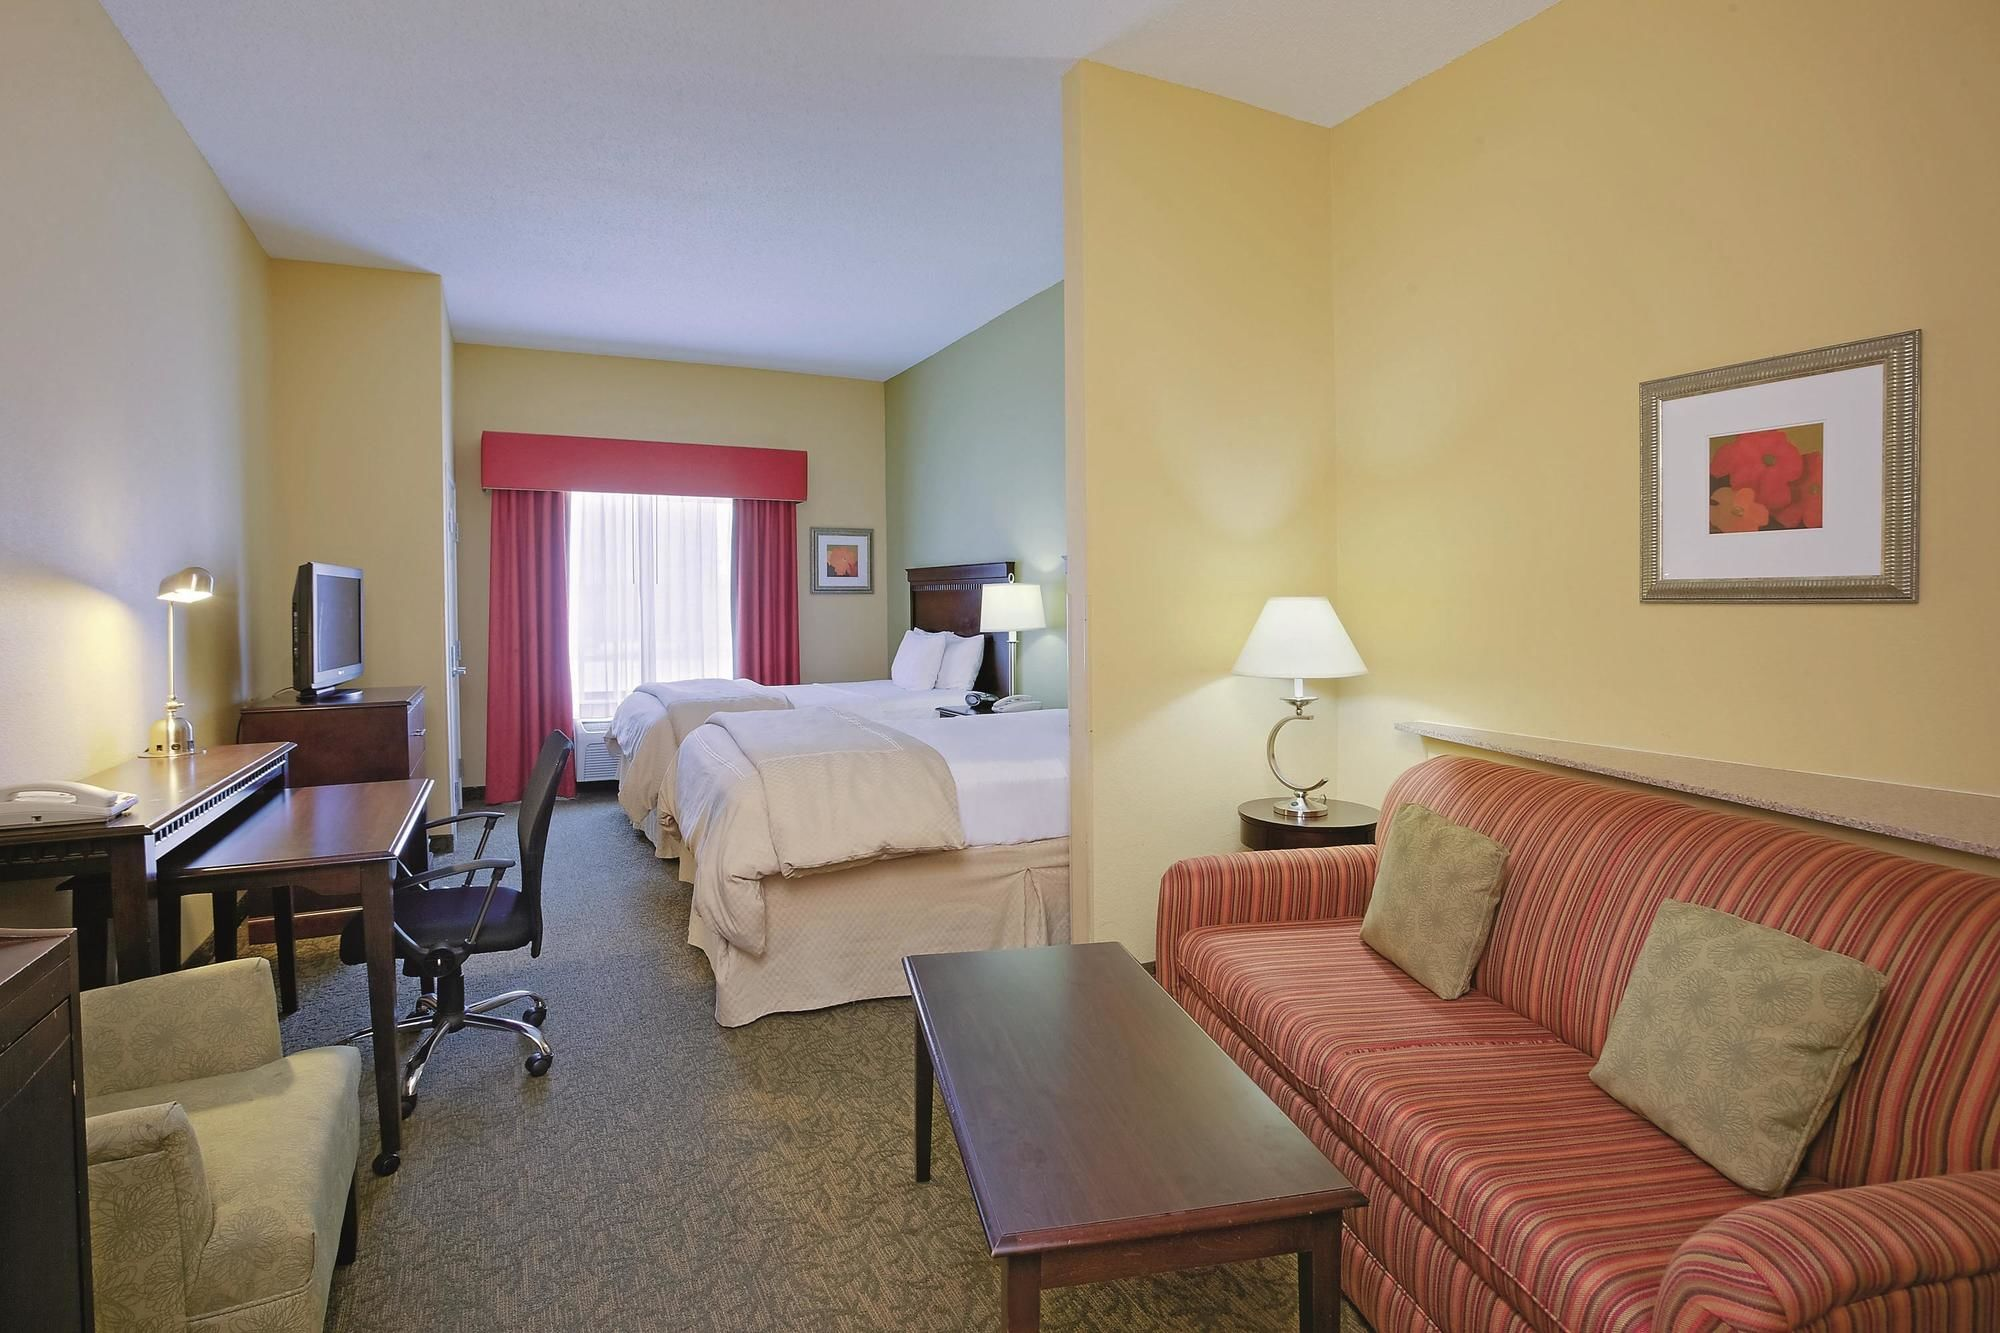 LaQuinta Inn & Suites in Doswell, VA